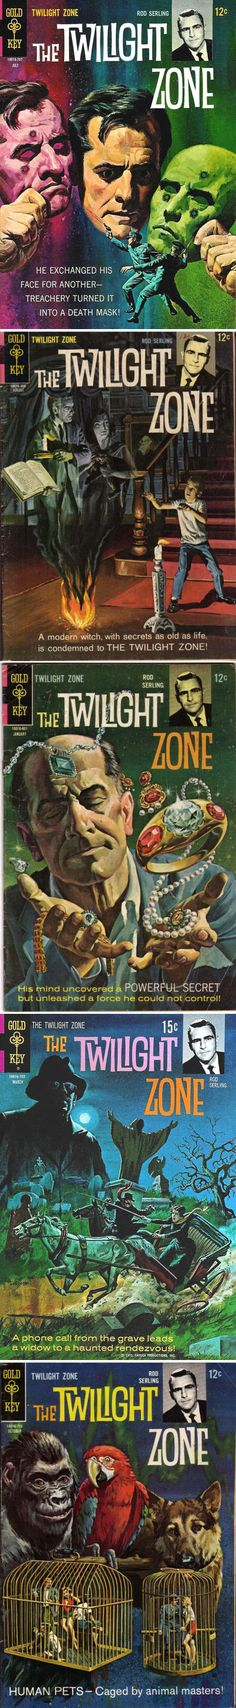 The Twilight Zone — comic books